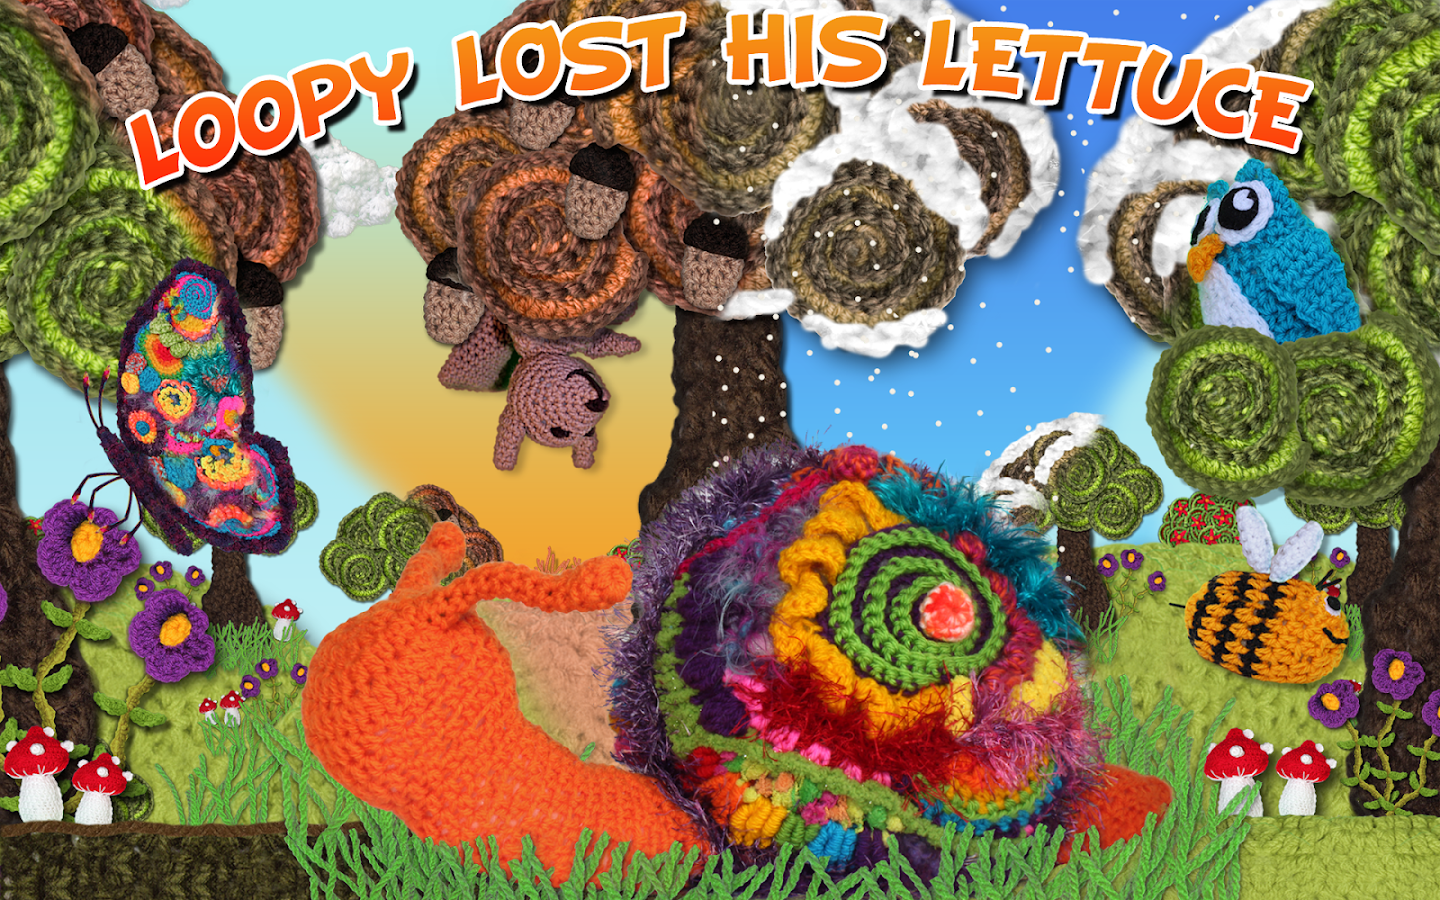 Loopy Lost His Lettuce- screenshot